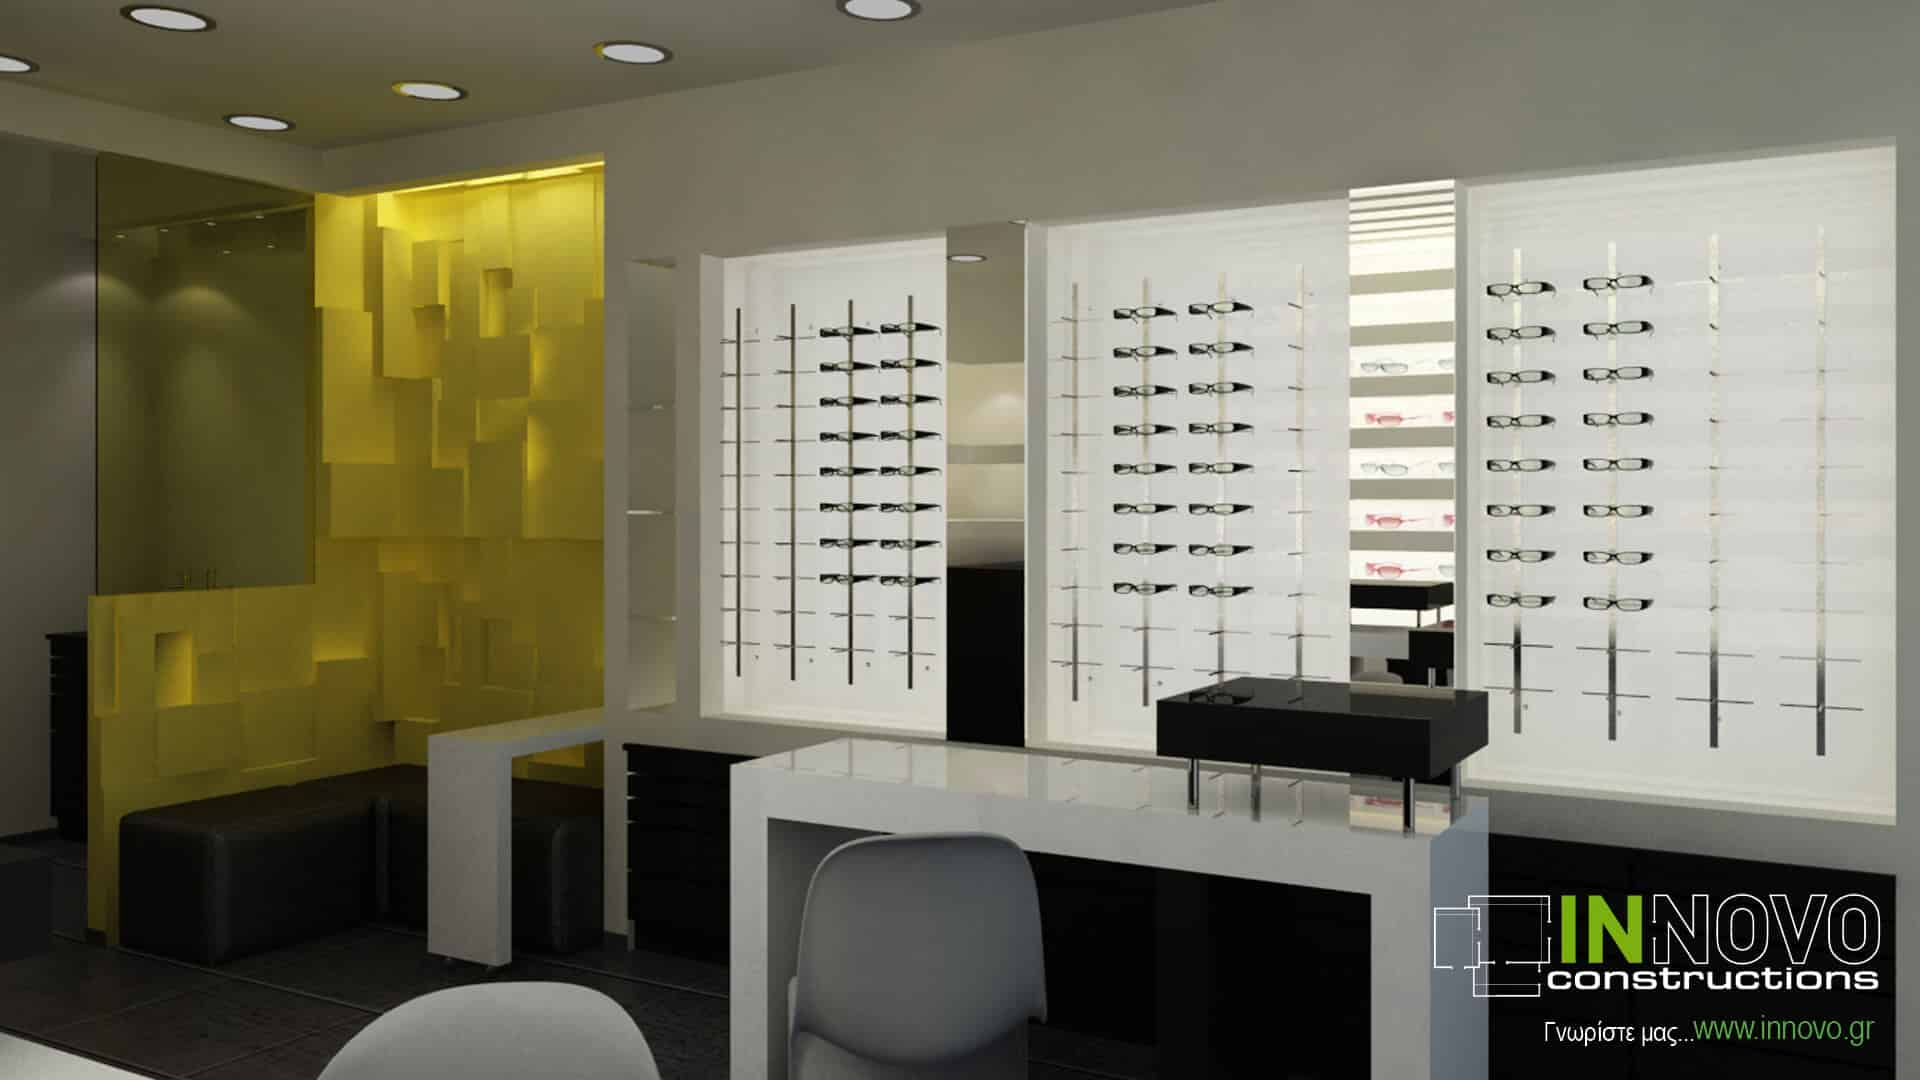 kataskevi-optikou-optics-construction-optiko-karpathos-1189-2